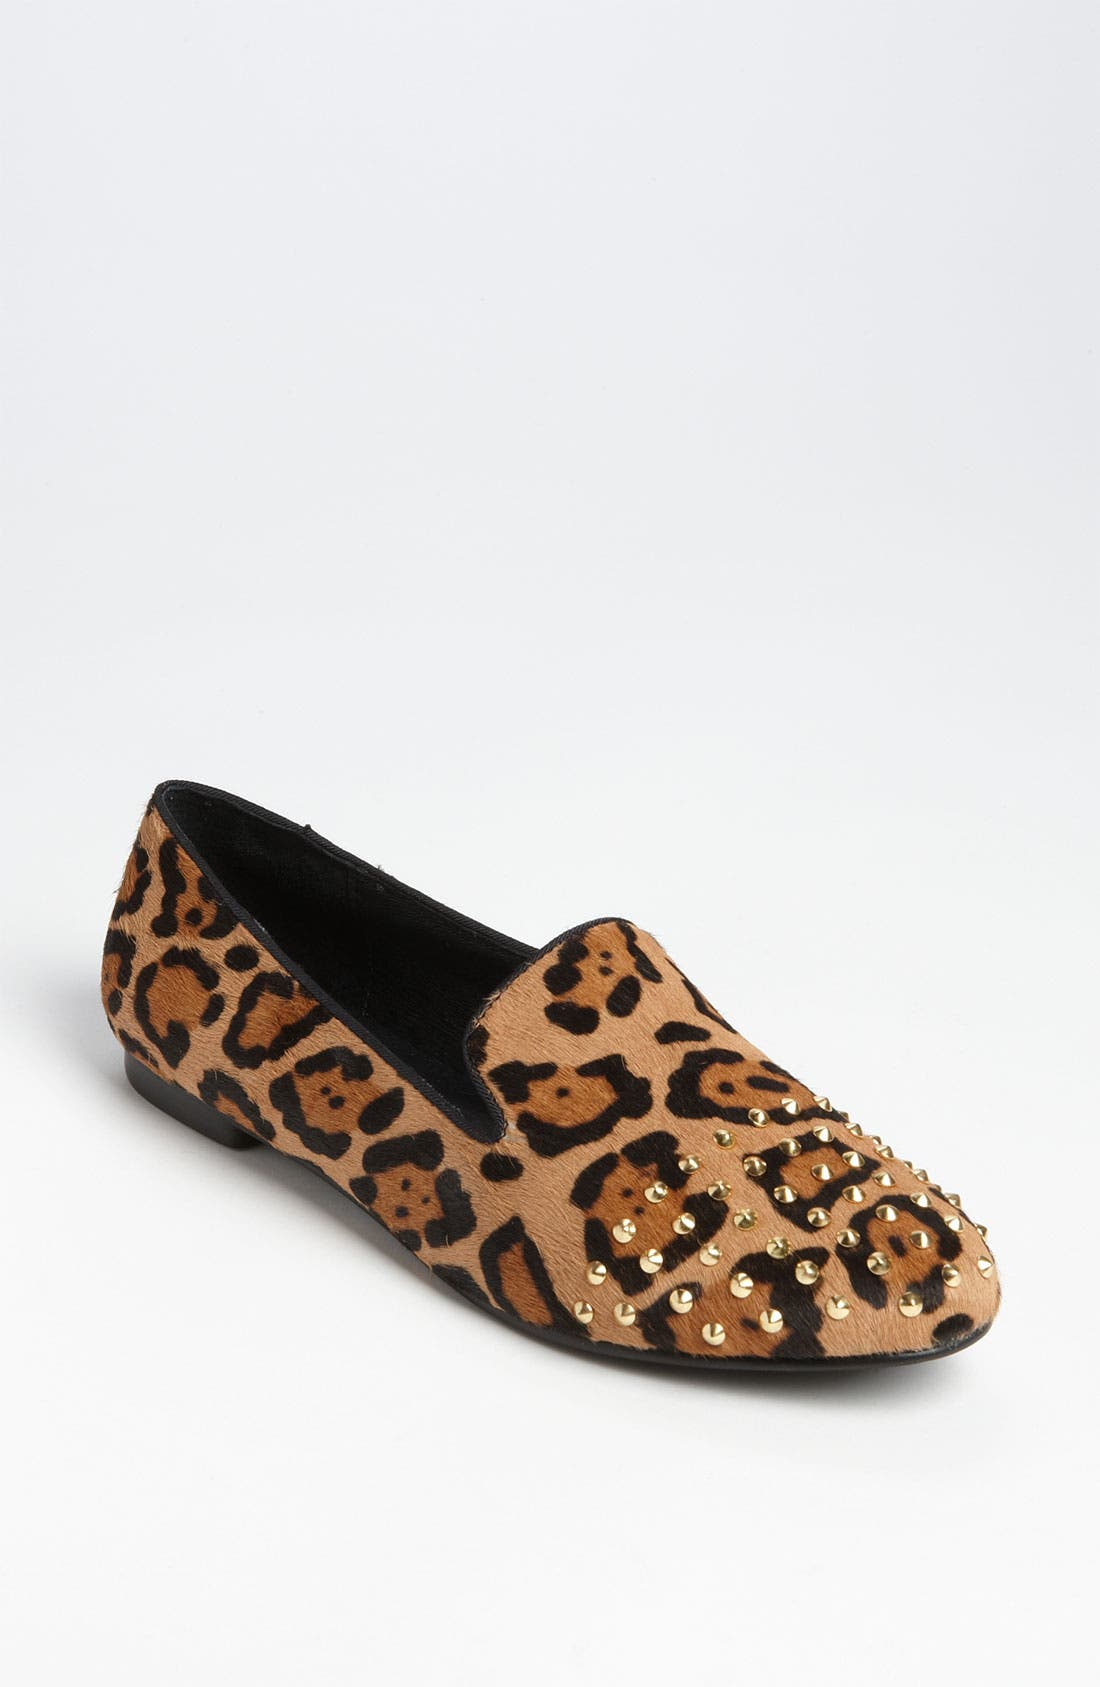 Alternate Image 1 Selected - Steven by Steve Madden 'Melter' Slip-On